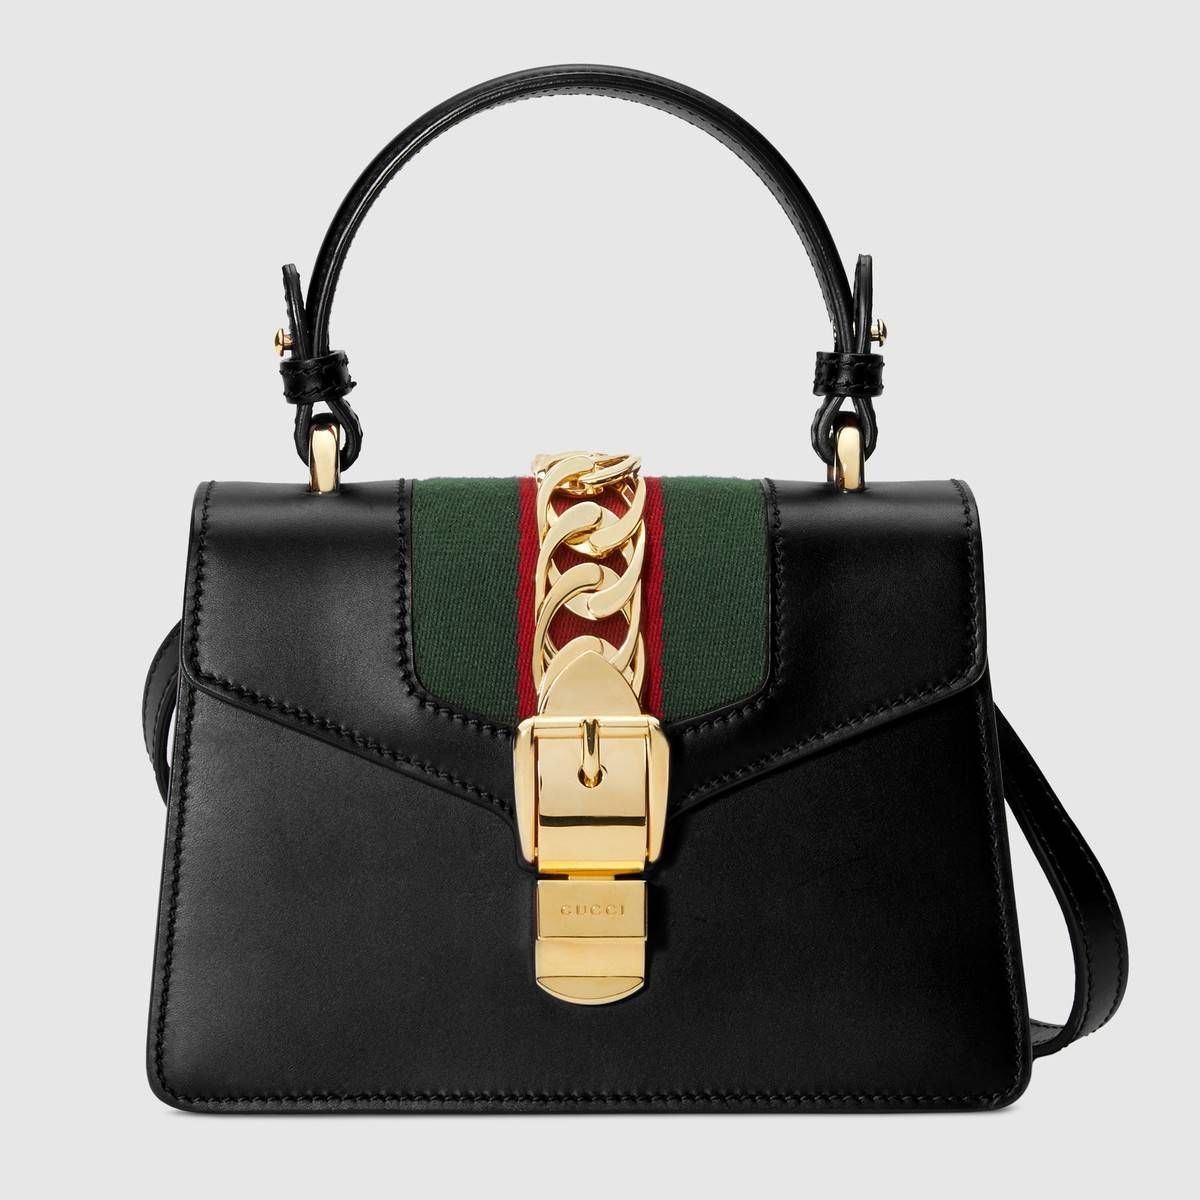 d65f5820c585 Shop the Sylvie leather mini bag by Gucci. The Sylvie mini bag in a top  handle shape with nylon Web embedded under the fabric and decorated with a  gold ...